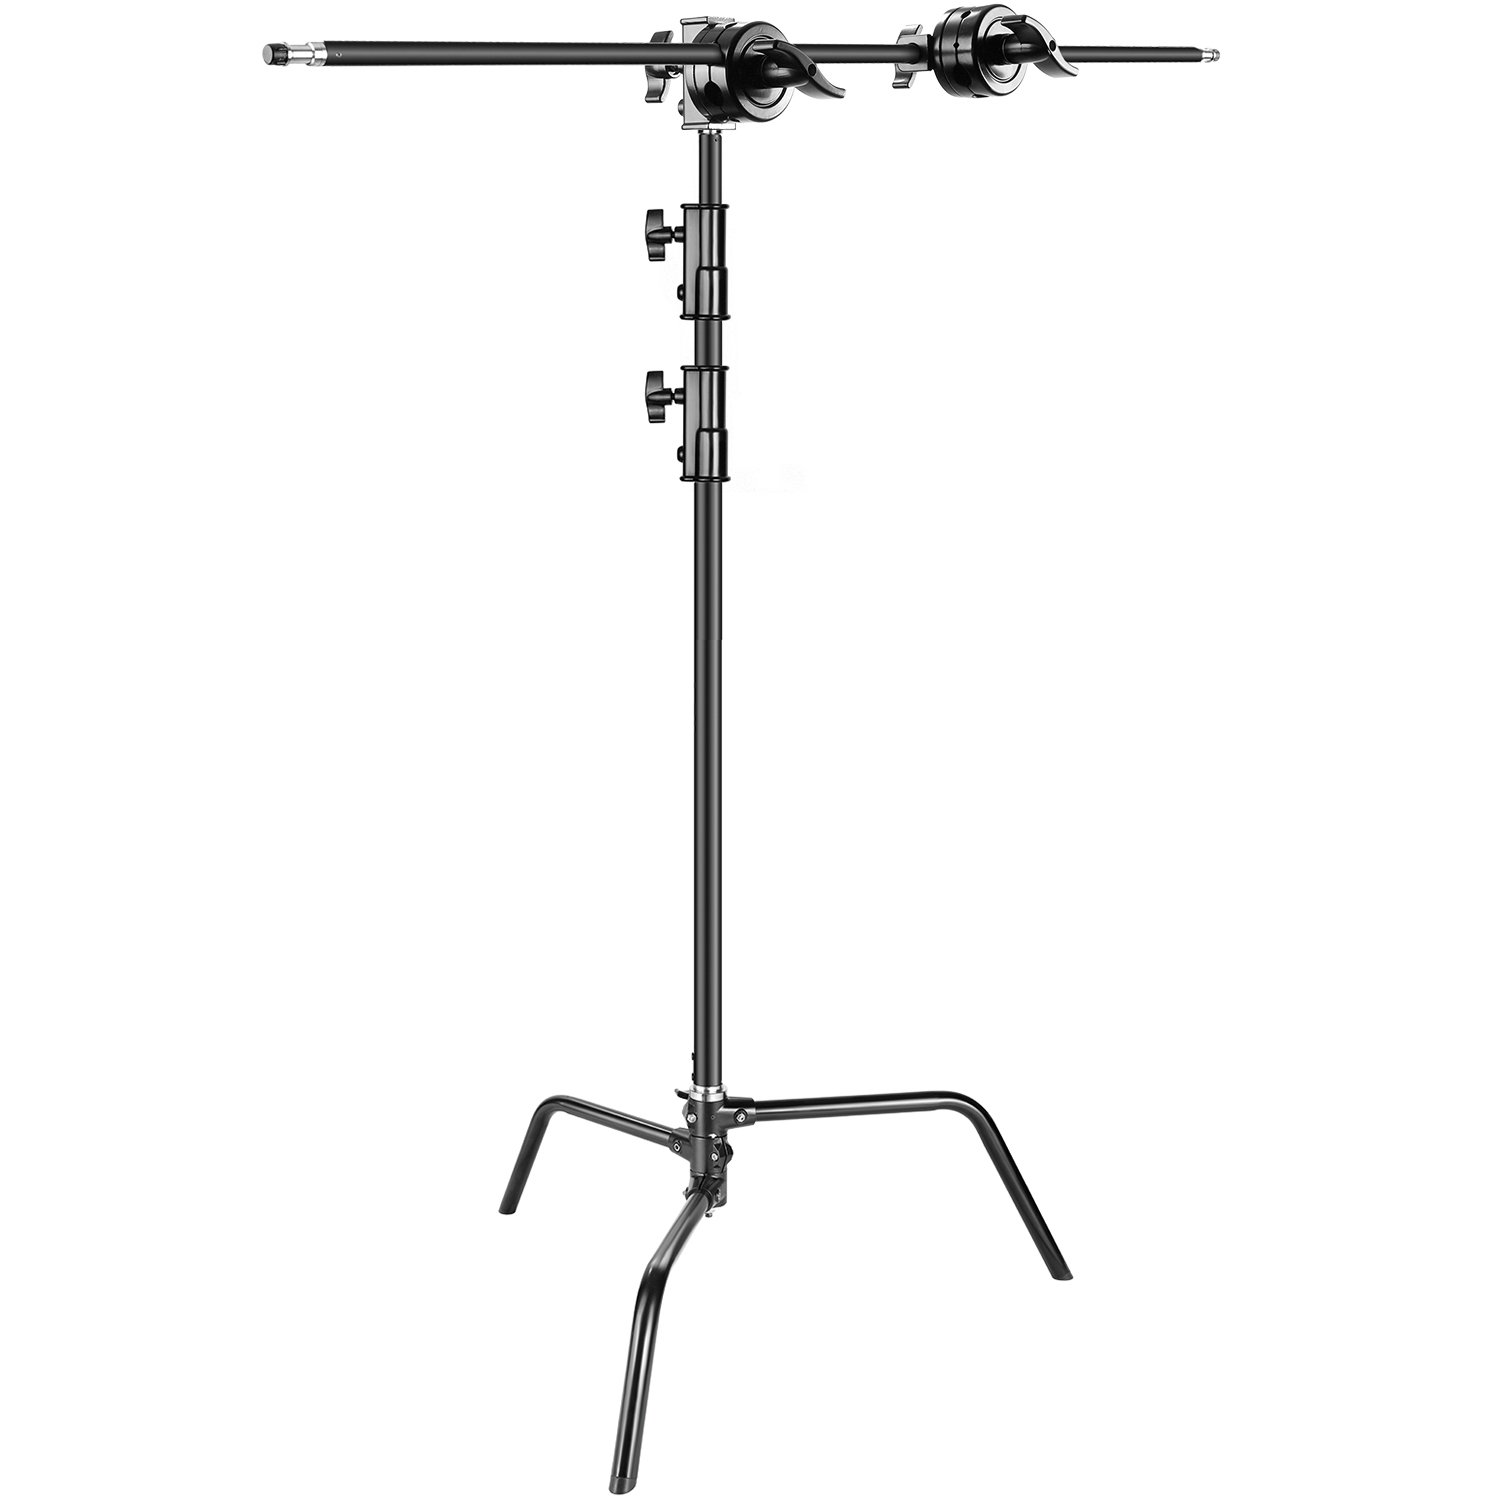 Neewer Photo Studio Heavy Duty 10 feet/3 meters Adjustable C-Stand, 3.5 feet/1 meter Holding Arm, 2 Pieces Grip Head for Video Reflector, Monolight and Other Photographic Equipment (Black) by Neewer